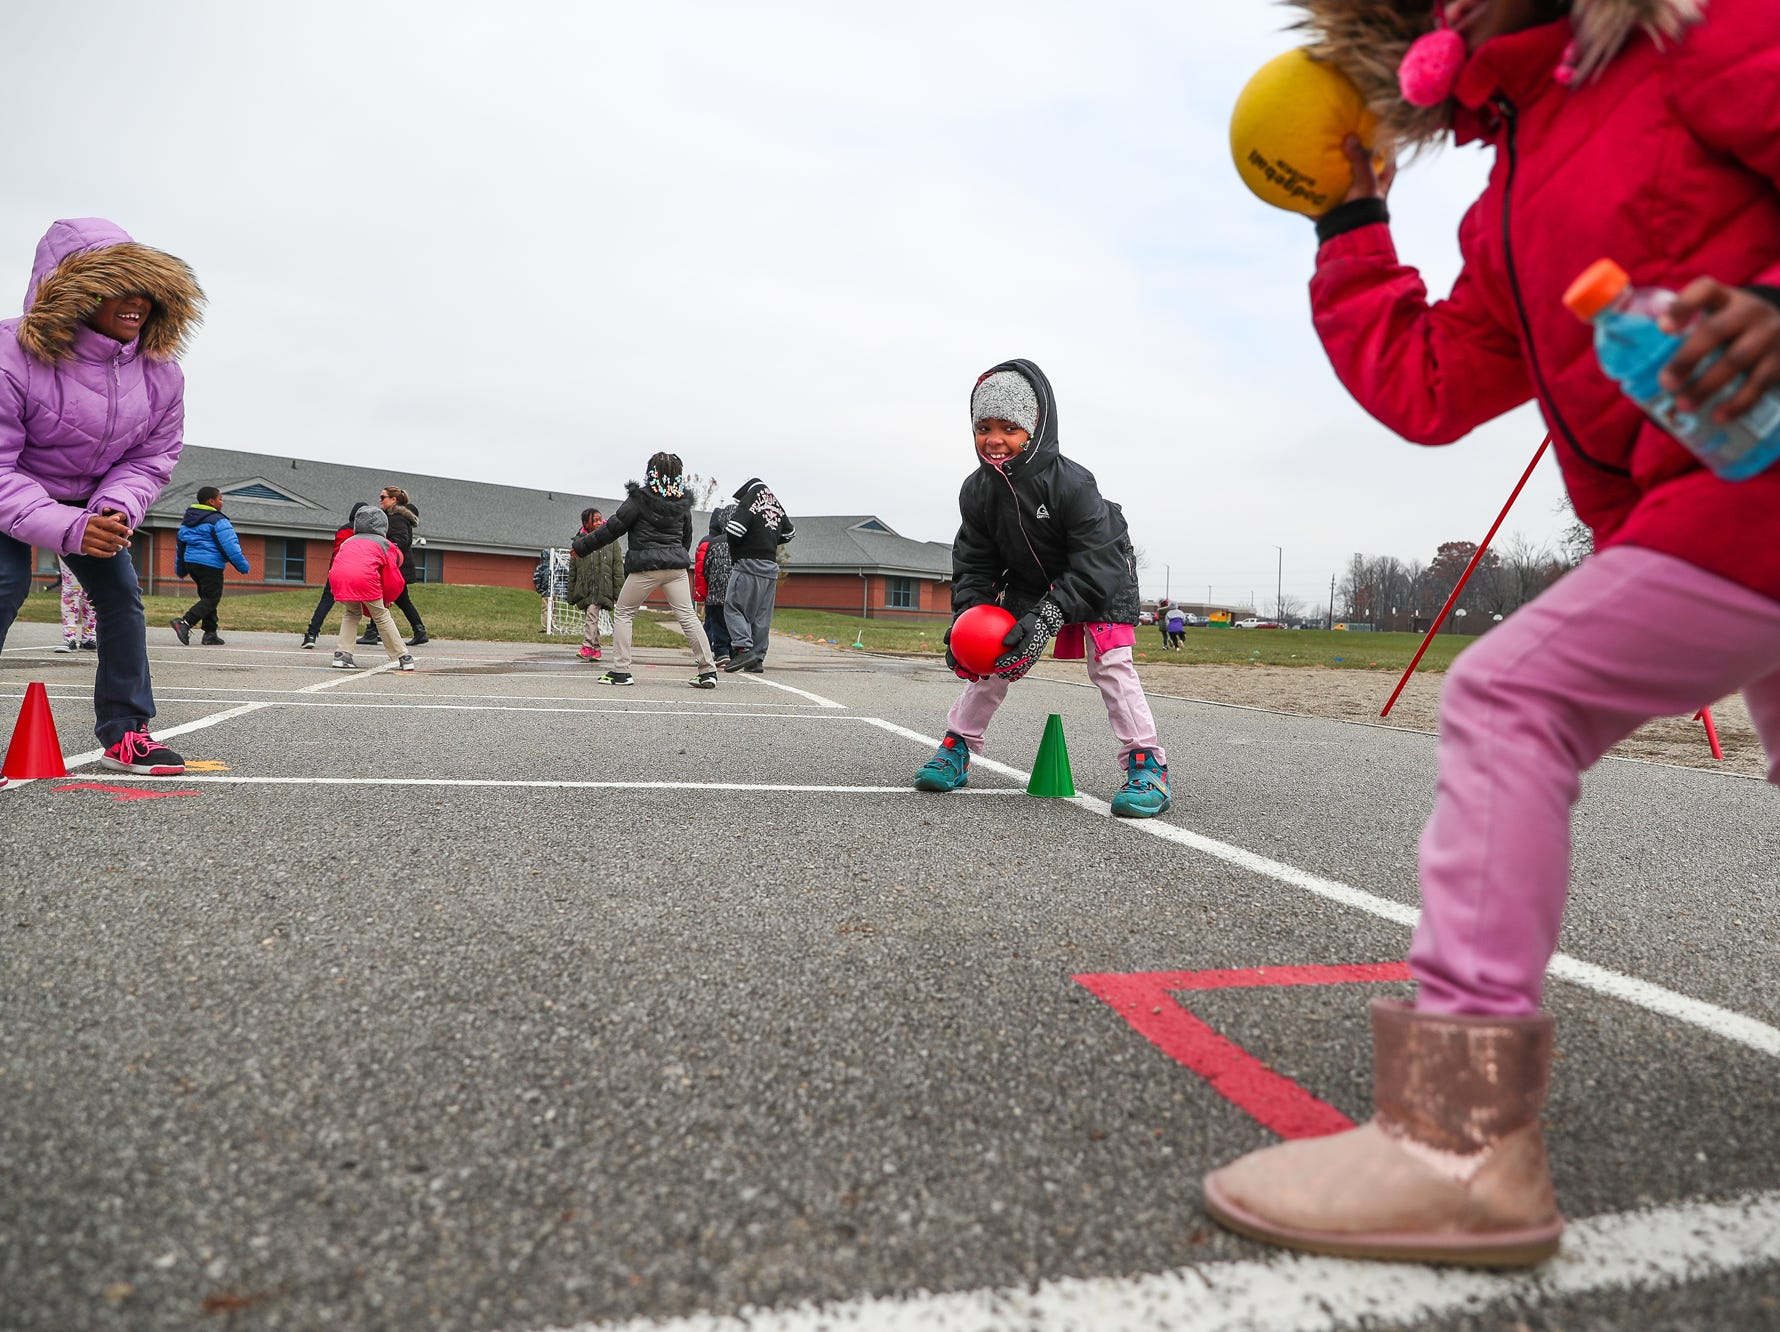 Aminah Brounson (middle), 8, eyes the cone of a fellow Gnome Guardian player during recess at Sunny Heights Elementary School on Friday, Nov. 16, 2018.